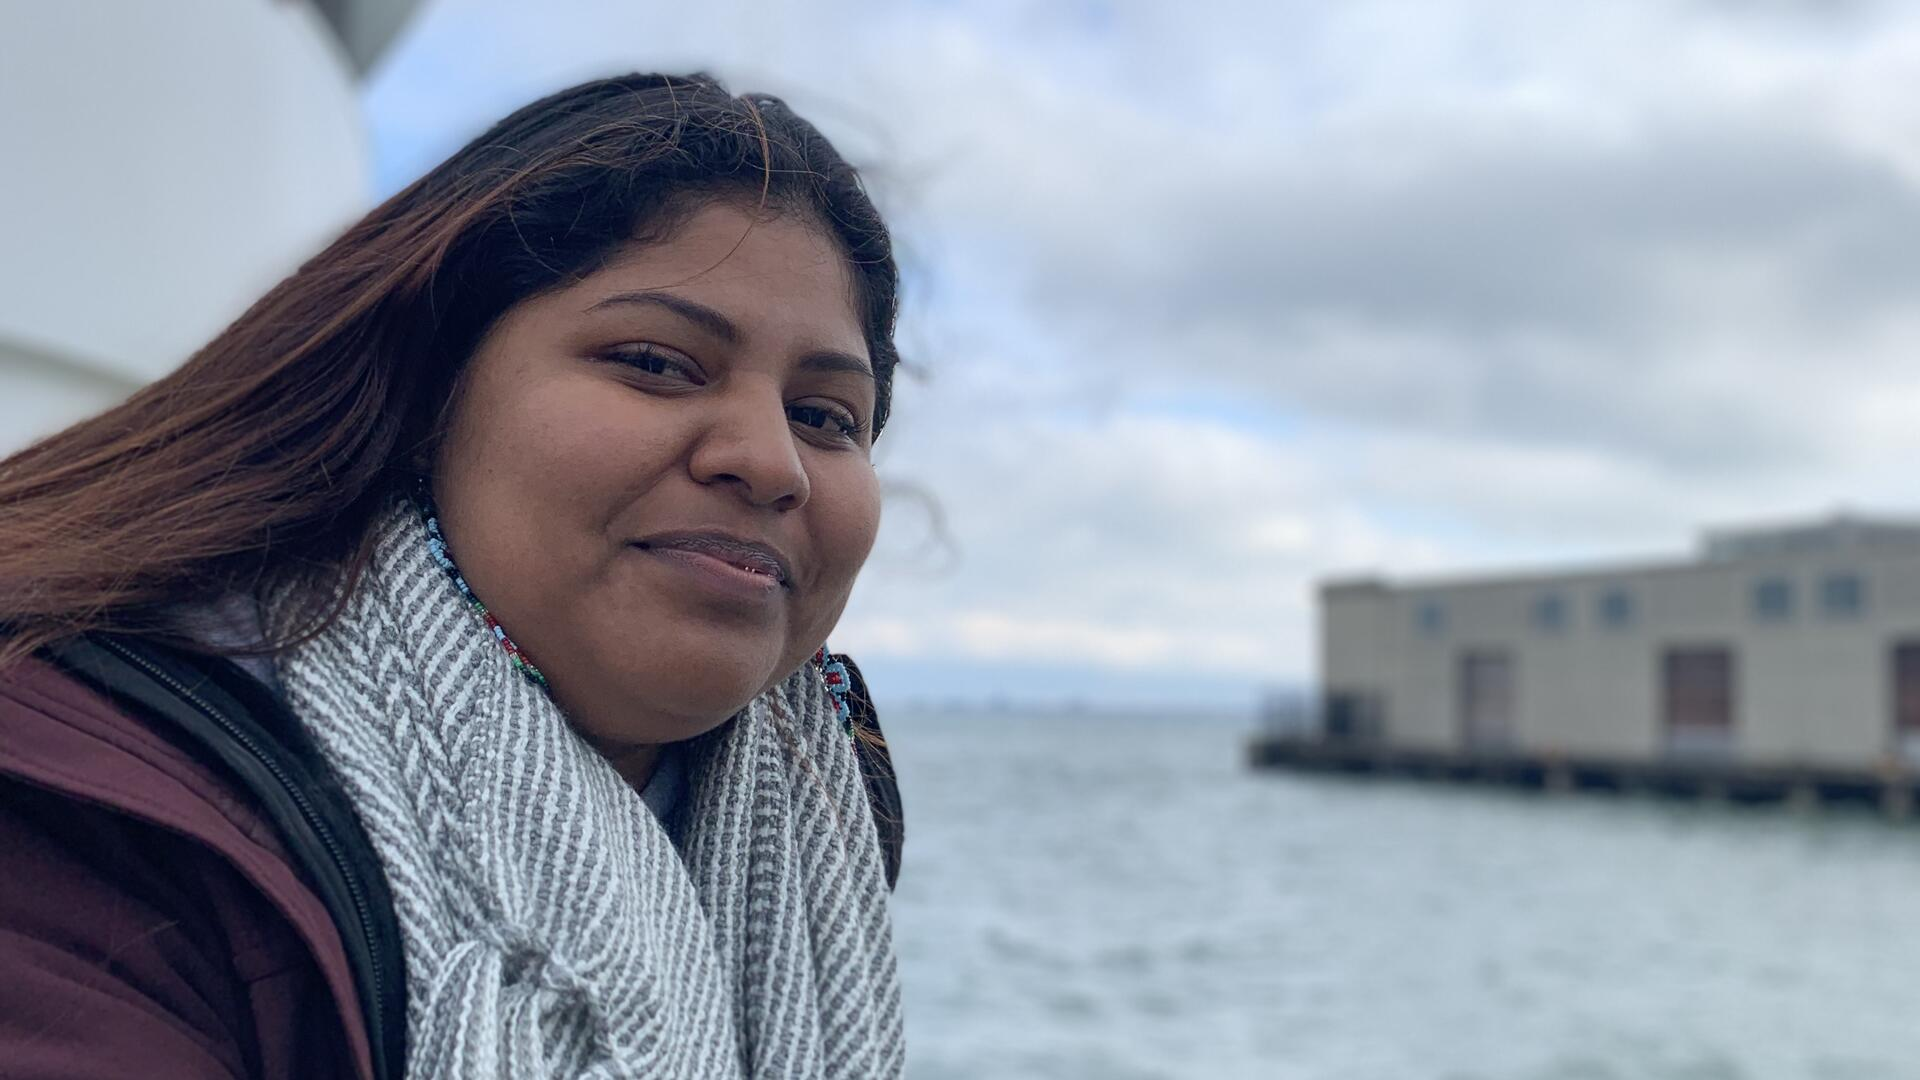 DACA recipient Lupe by the waterfront in California